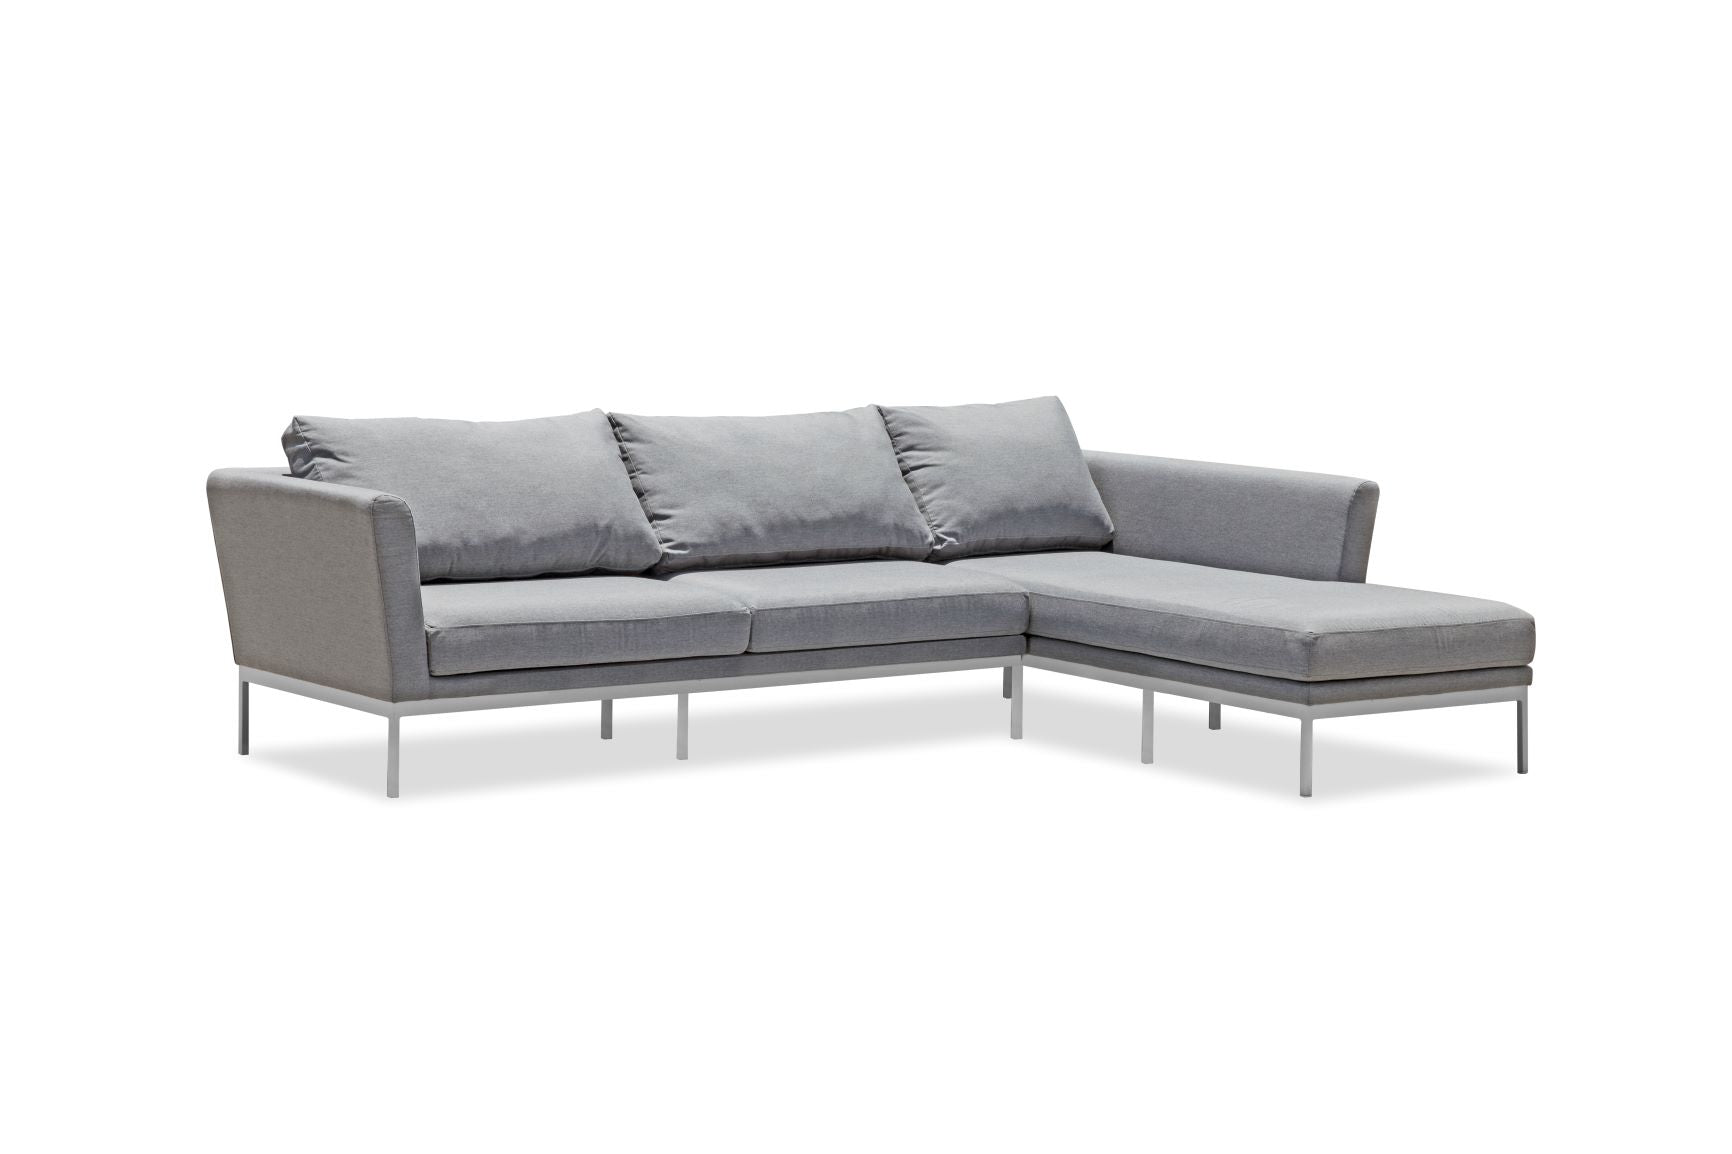 Whiteline Modern Living-Ursula Outdoor Right Facing Sectional-Outdoor Sectionals-MODTEMPO